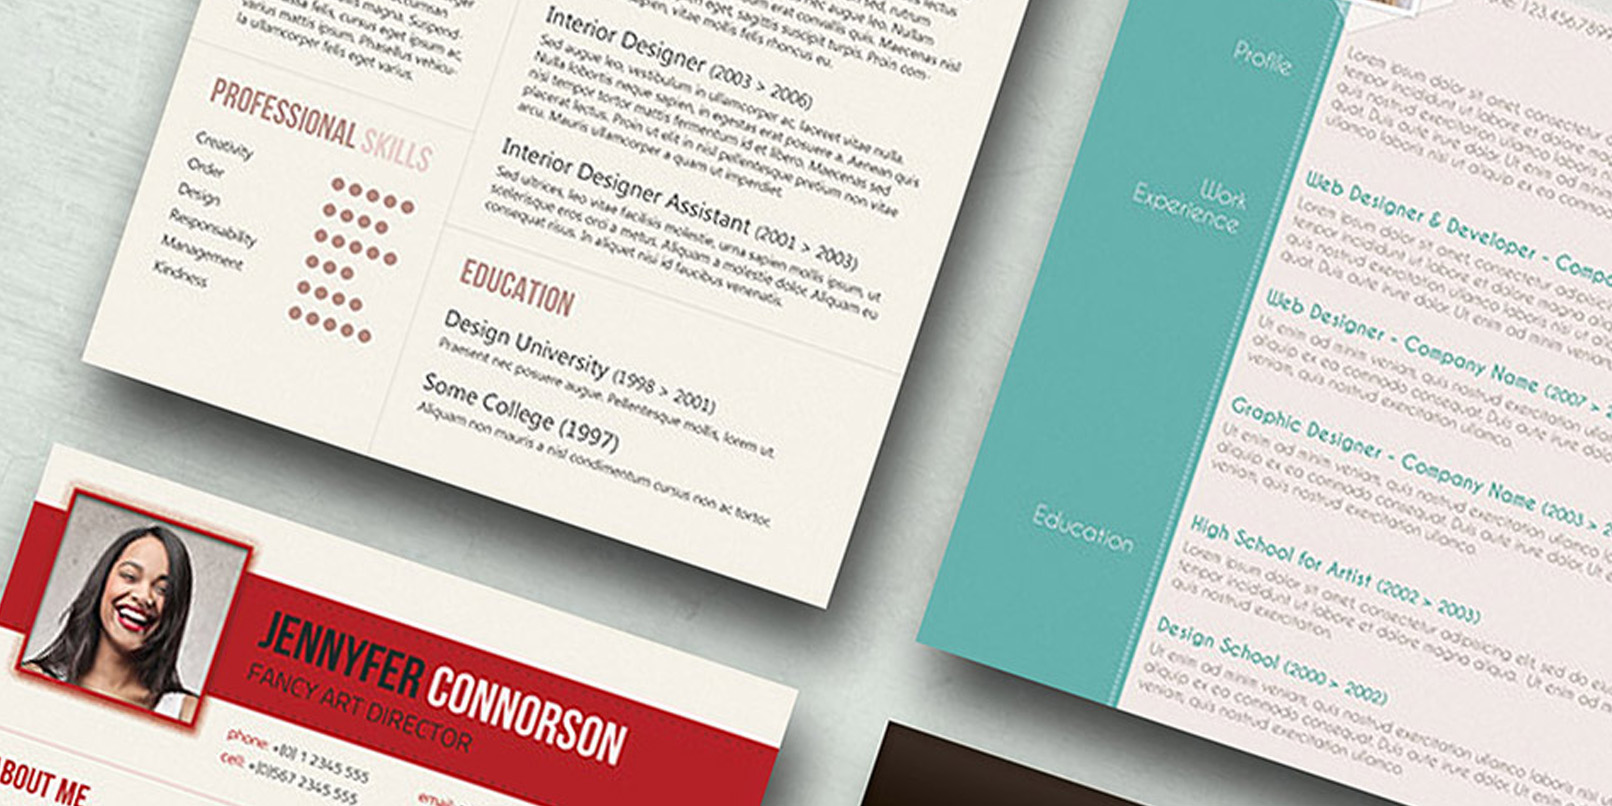 Add flavor to your job search with 25 'Spicy Resume' templates (85% off)